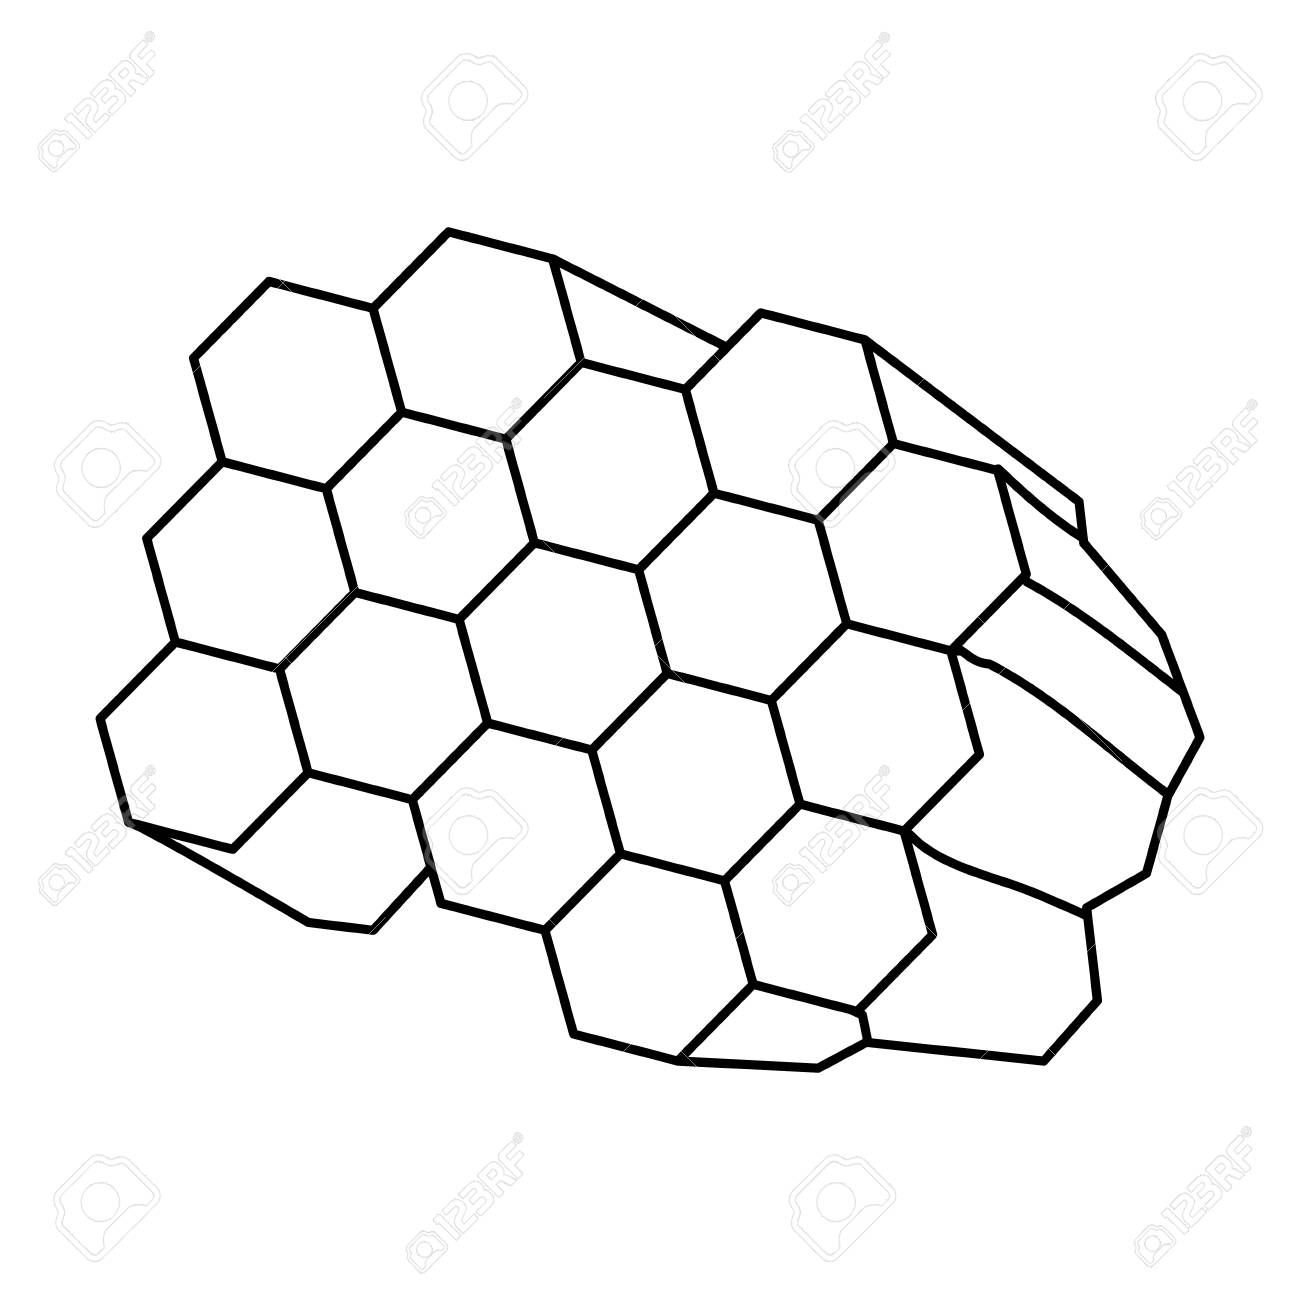 honeycomb cartoon icon vector illustration graphic design royalty rh 123rf com honeycomb vector black and white honeycomb vector black and white